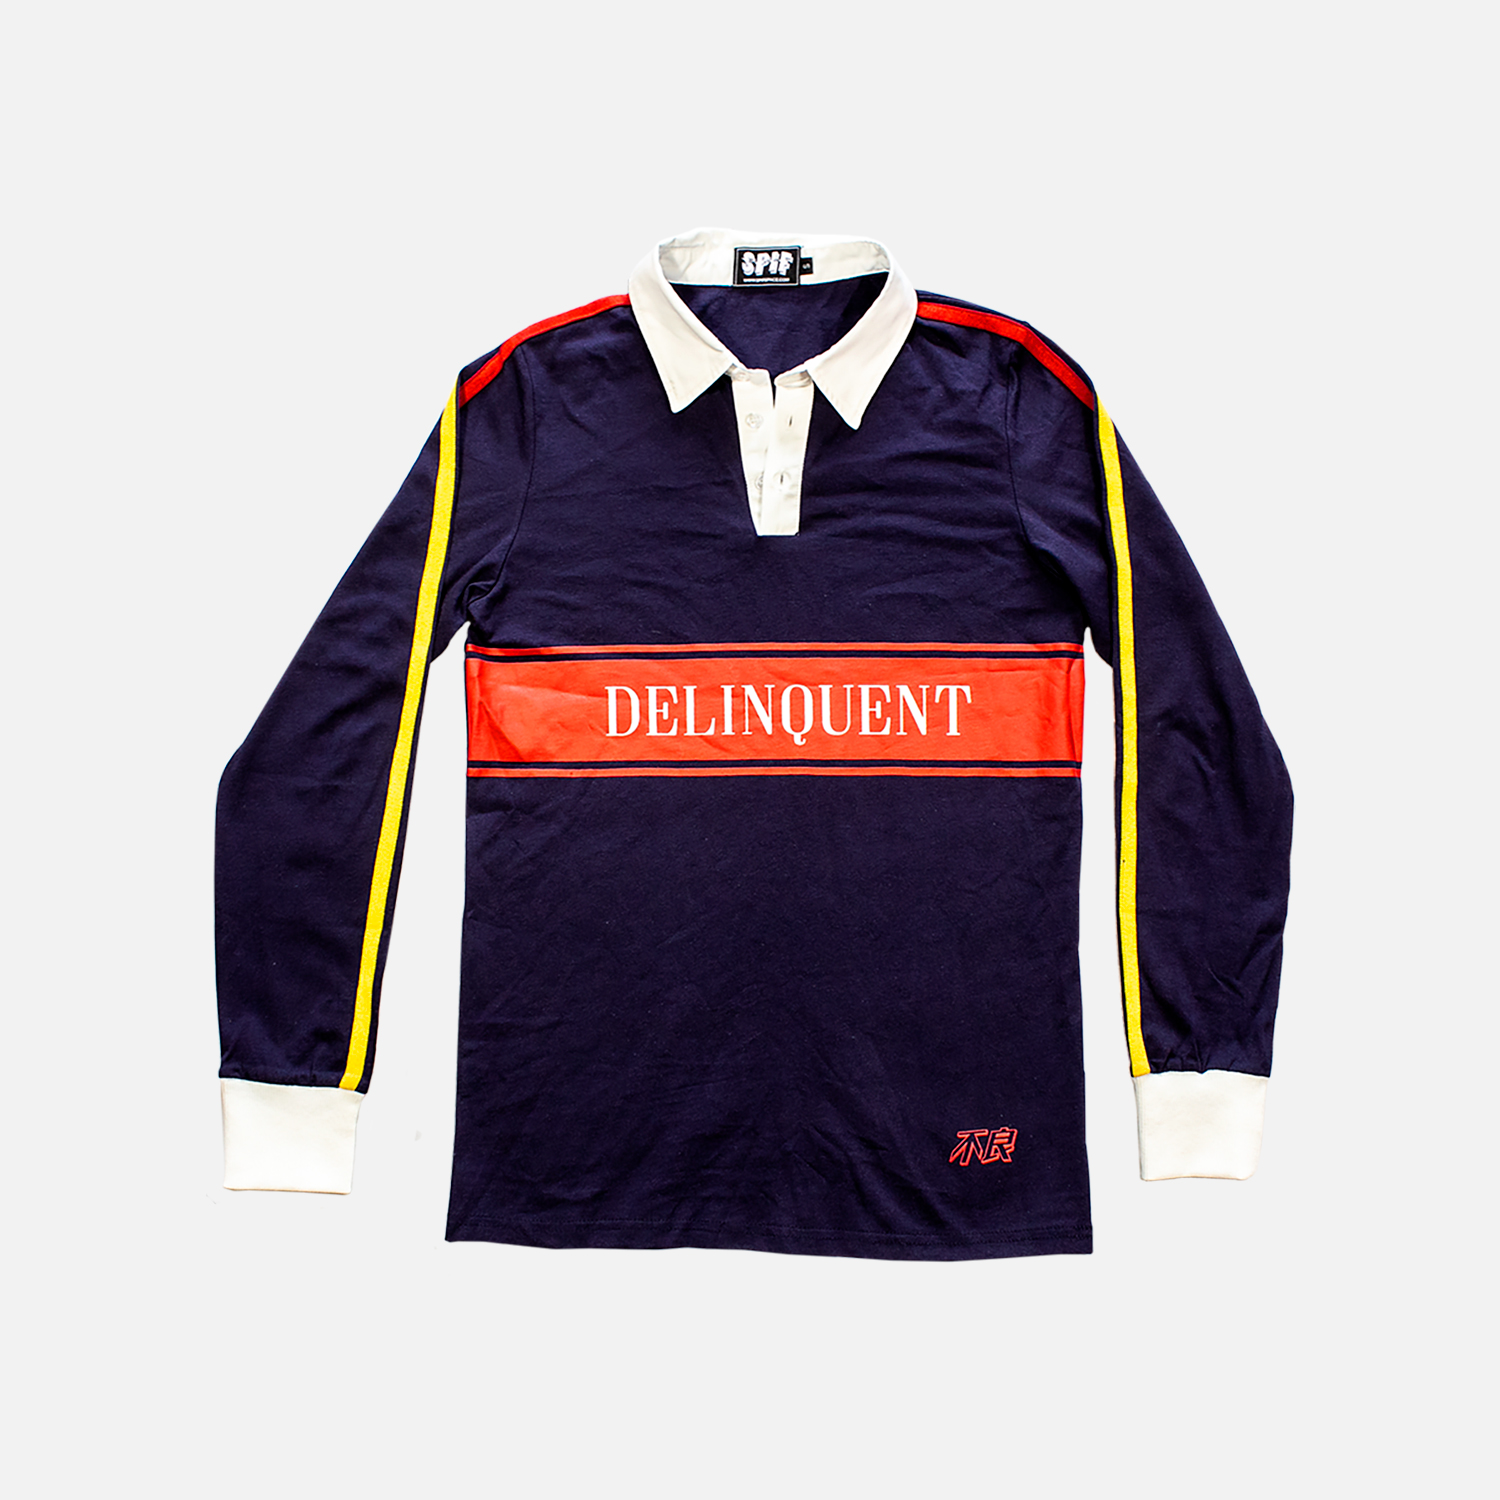 DELINQUENTRUGBY TEE - YELLOW AND RED CONTRAST SIDE TAPING[$50]